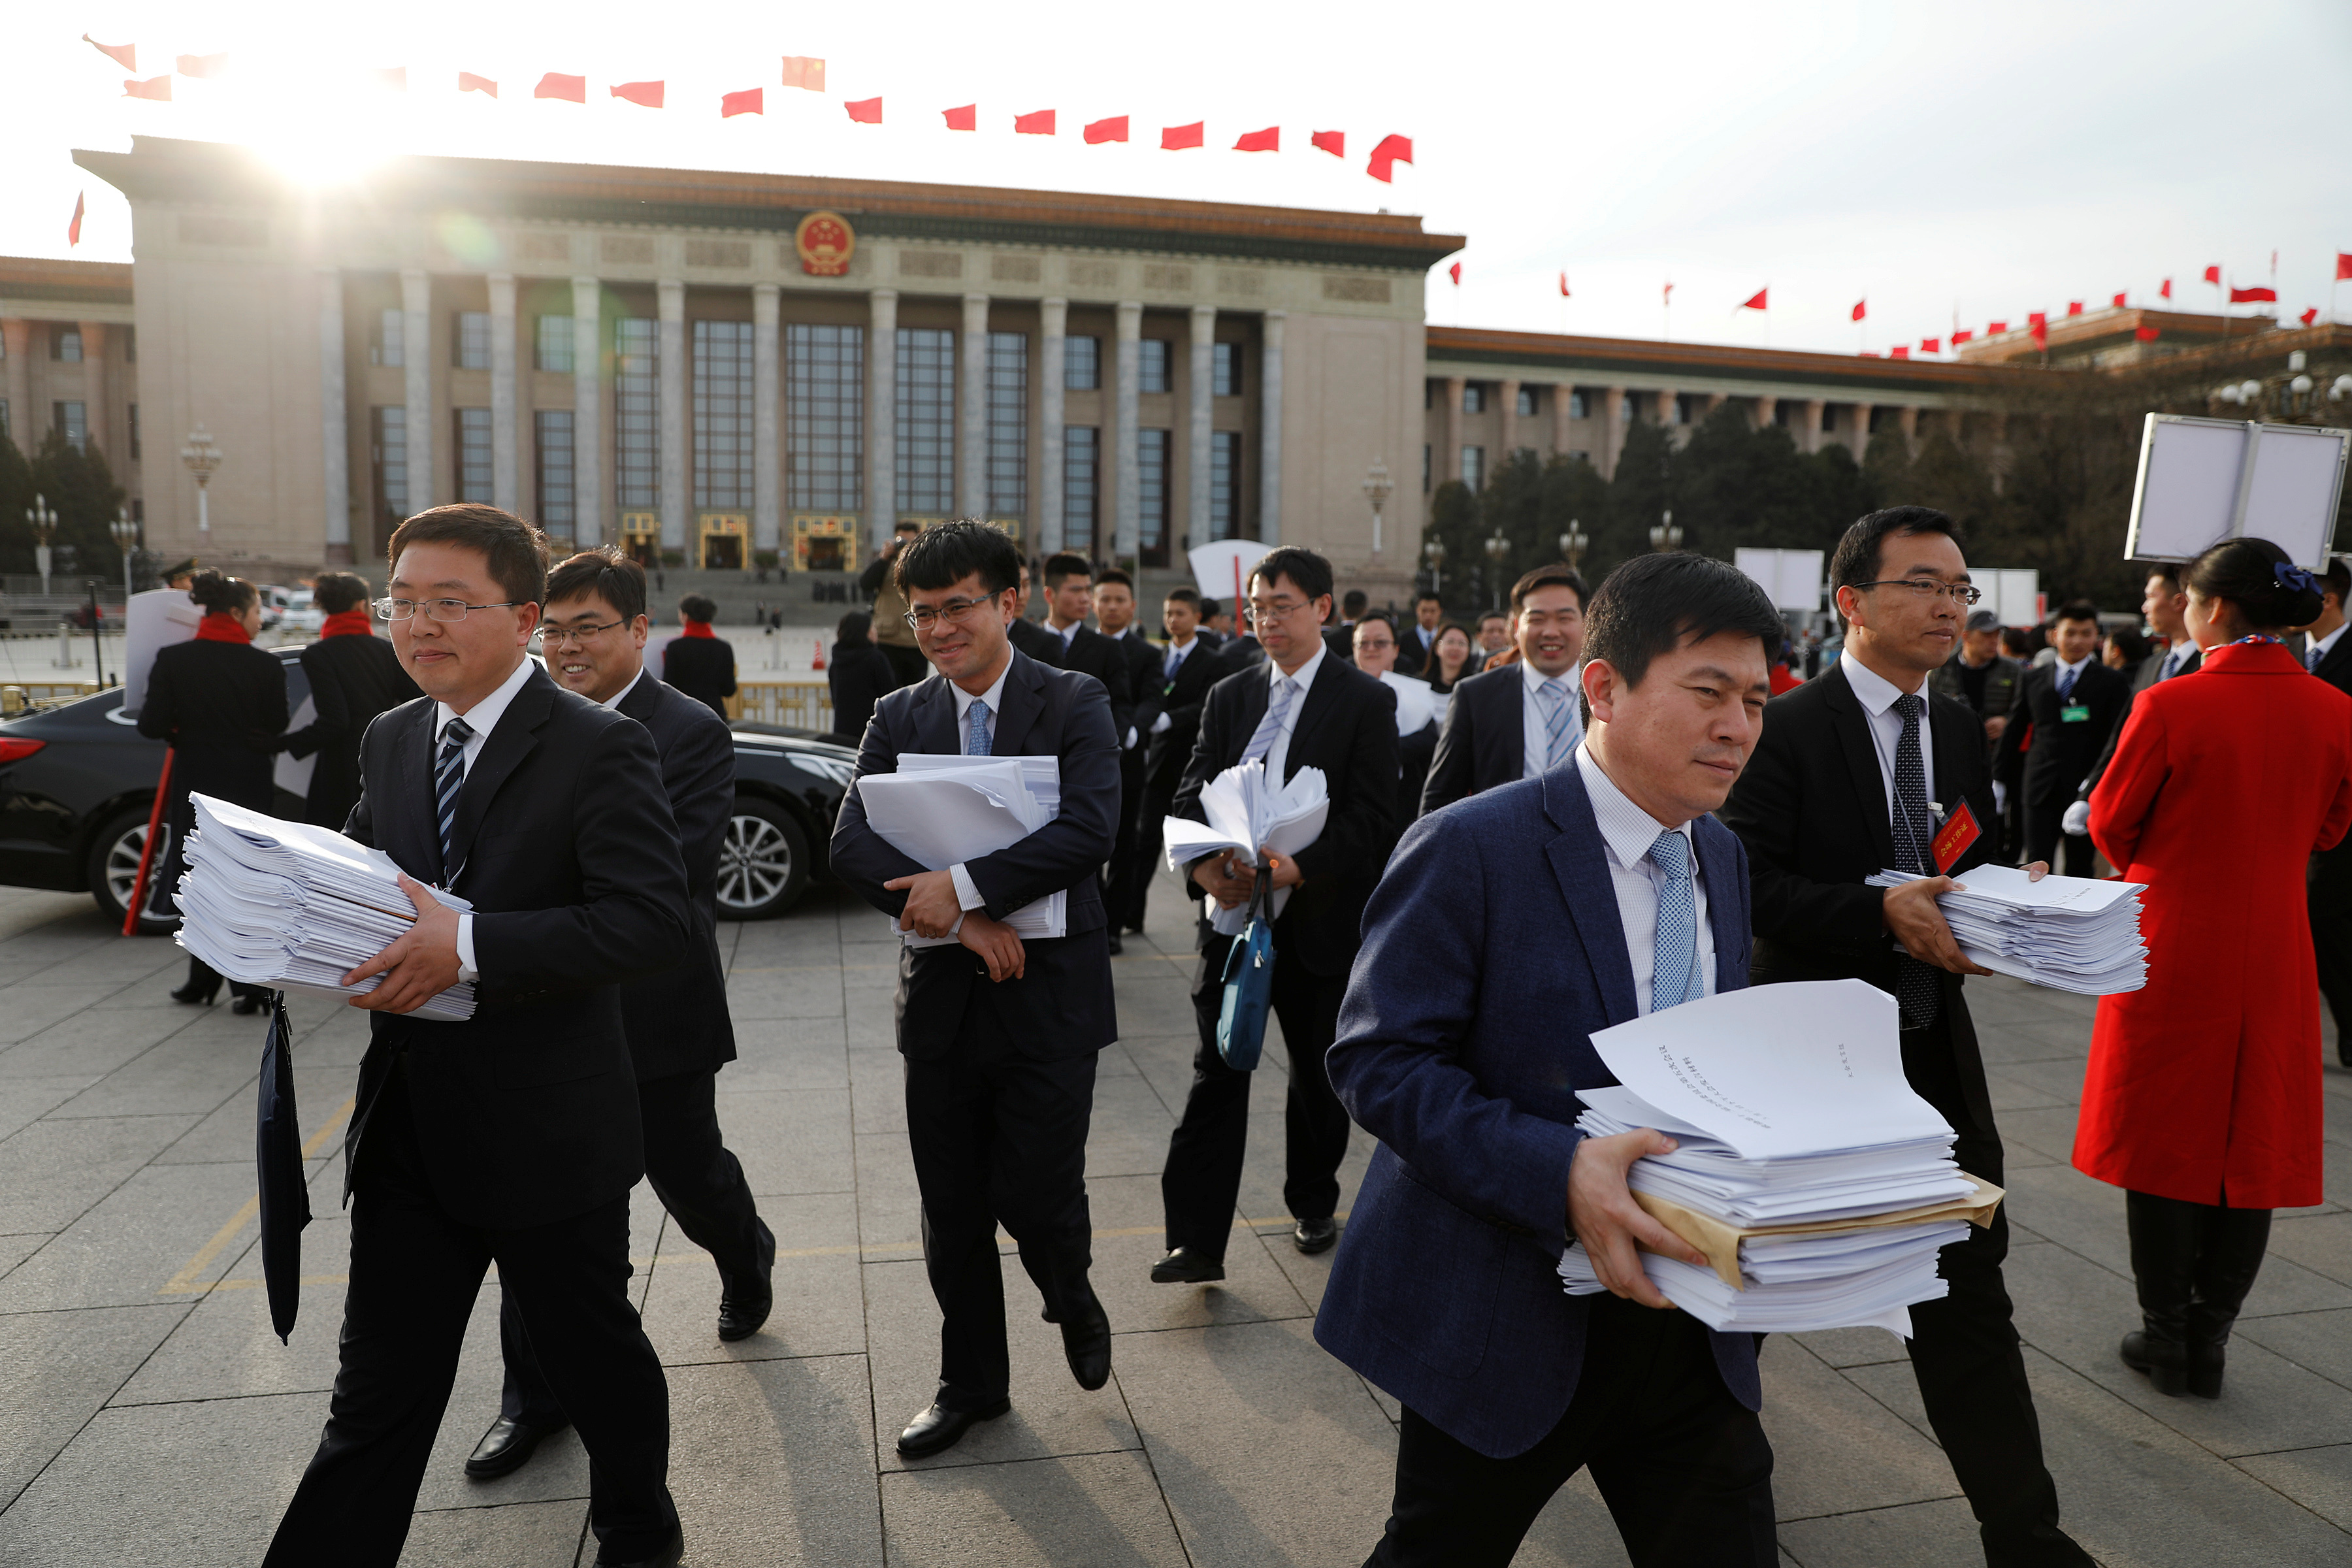 People carry stacks of papers near the Great Hall of the People after a plenary session of the Chinese People's Political Consultative Conference (CPPCC) in Beijing, China, March 11, 2017. REUTERS/Damir Sagolj - RTX30K0G